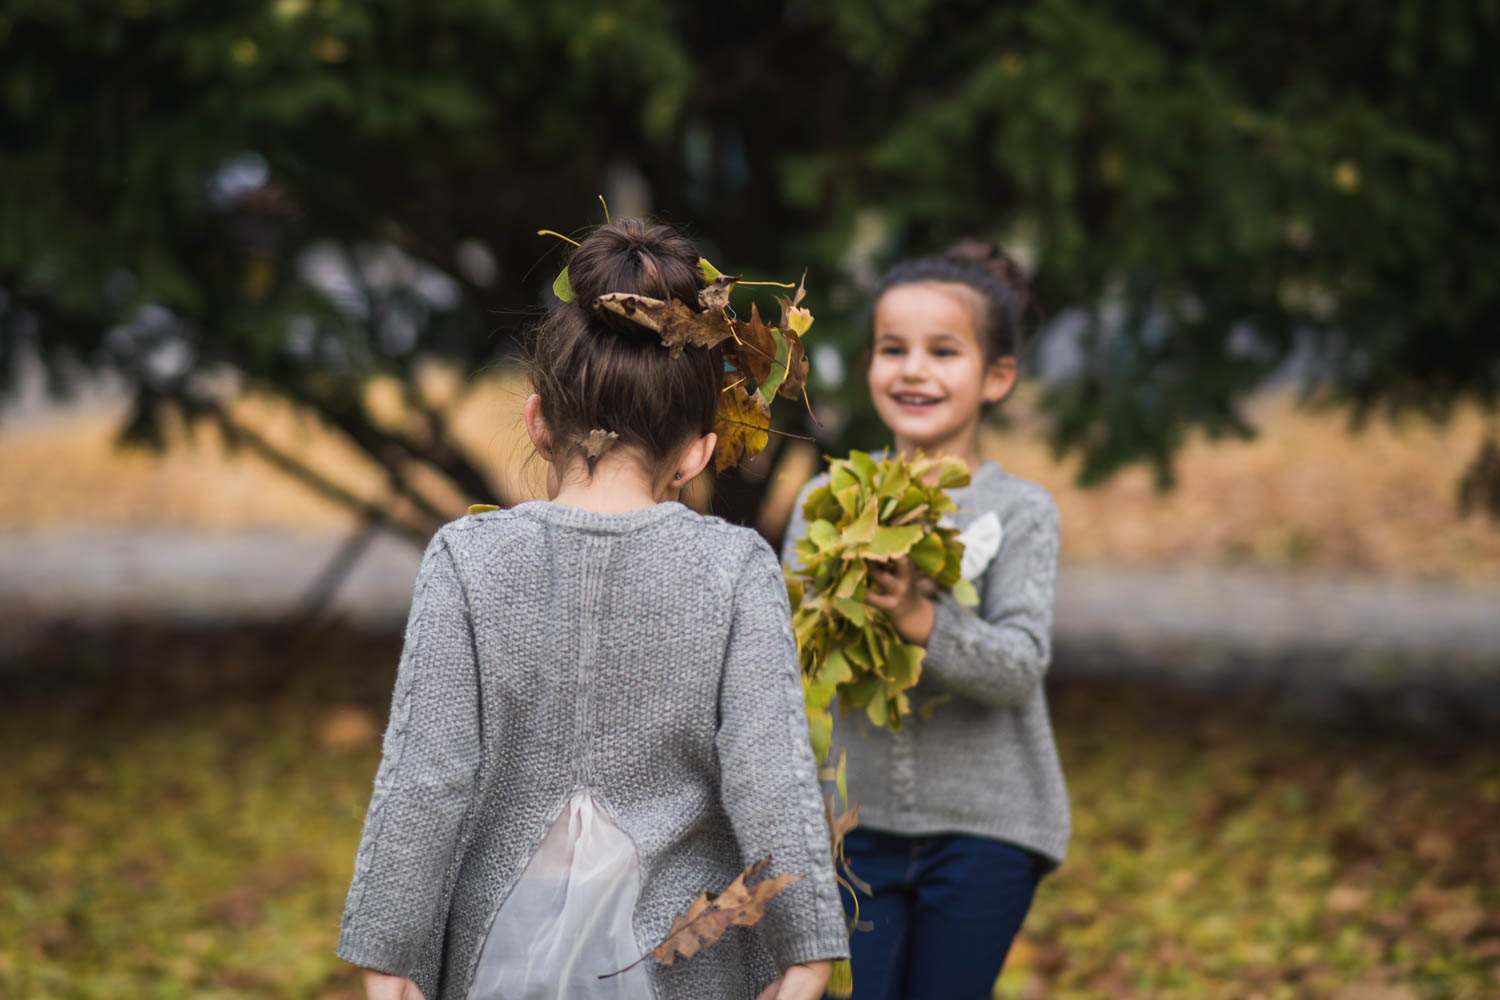 A portrait of kids throwing leaves during their fall family photography mini session at Tower Grove Park.